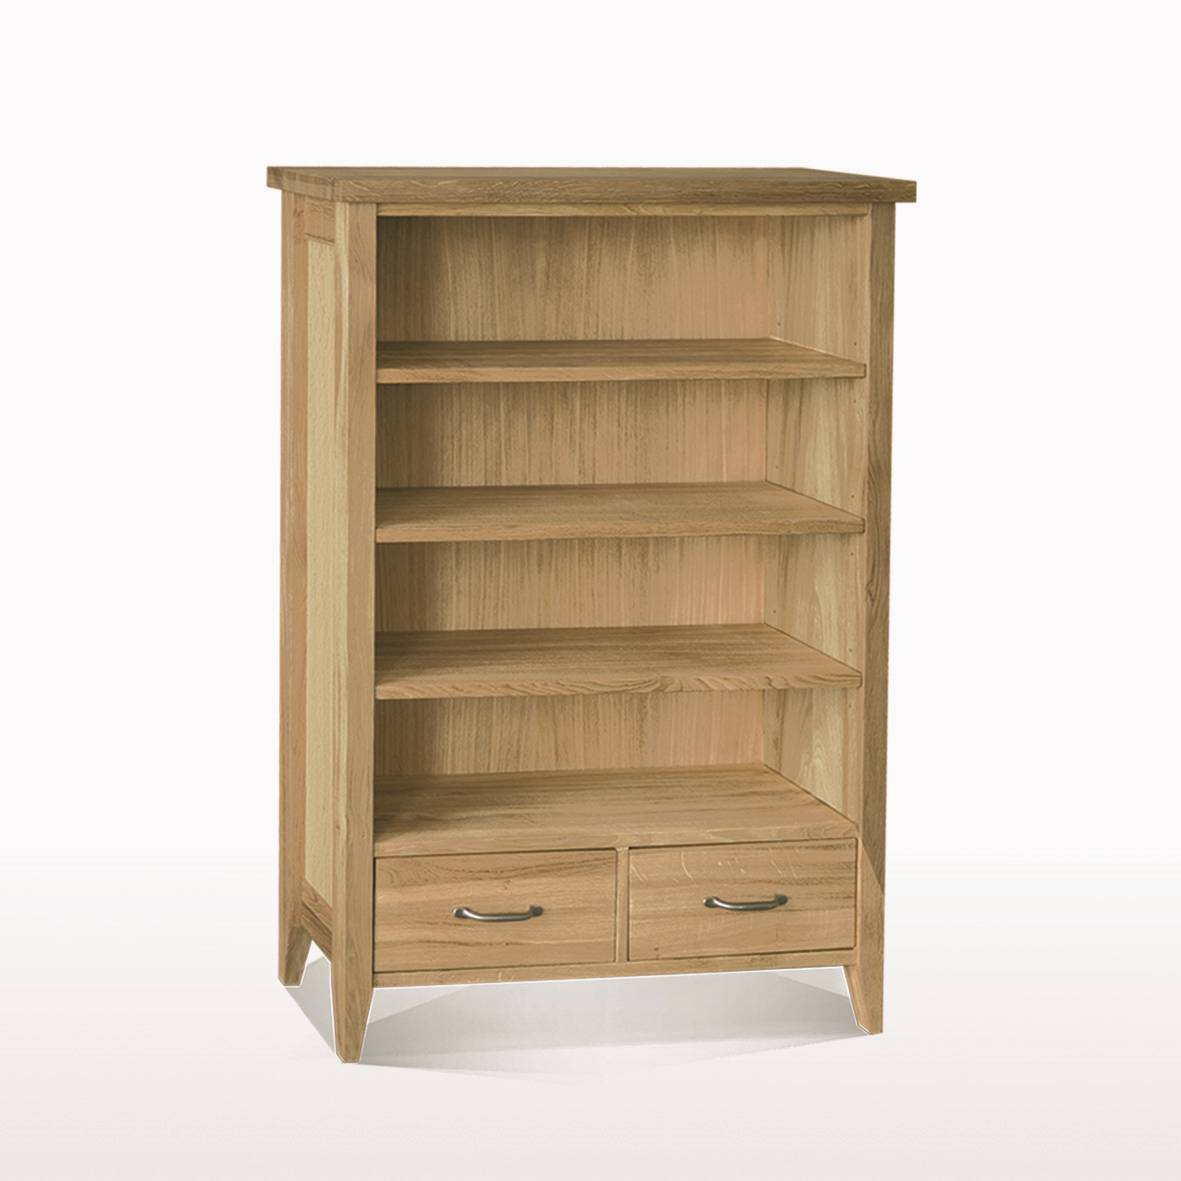 Windsor Dining Bookcase 2 Drawers (W95xD28xH120)